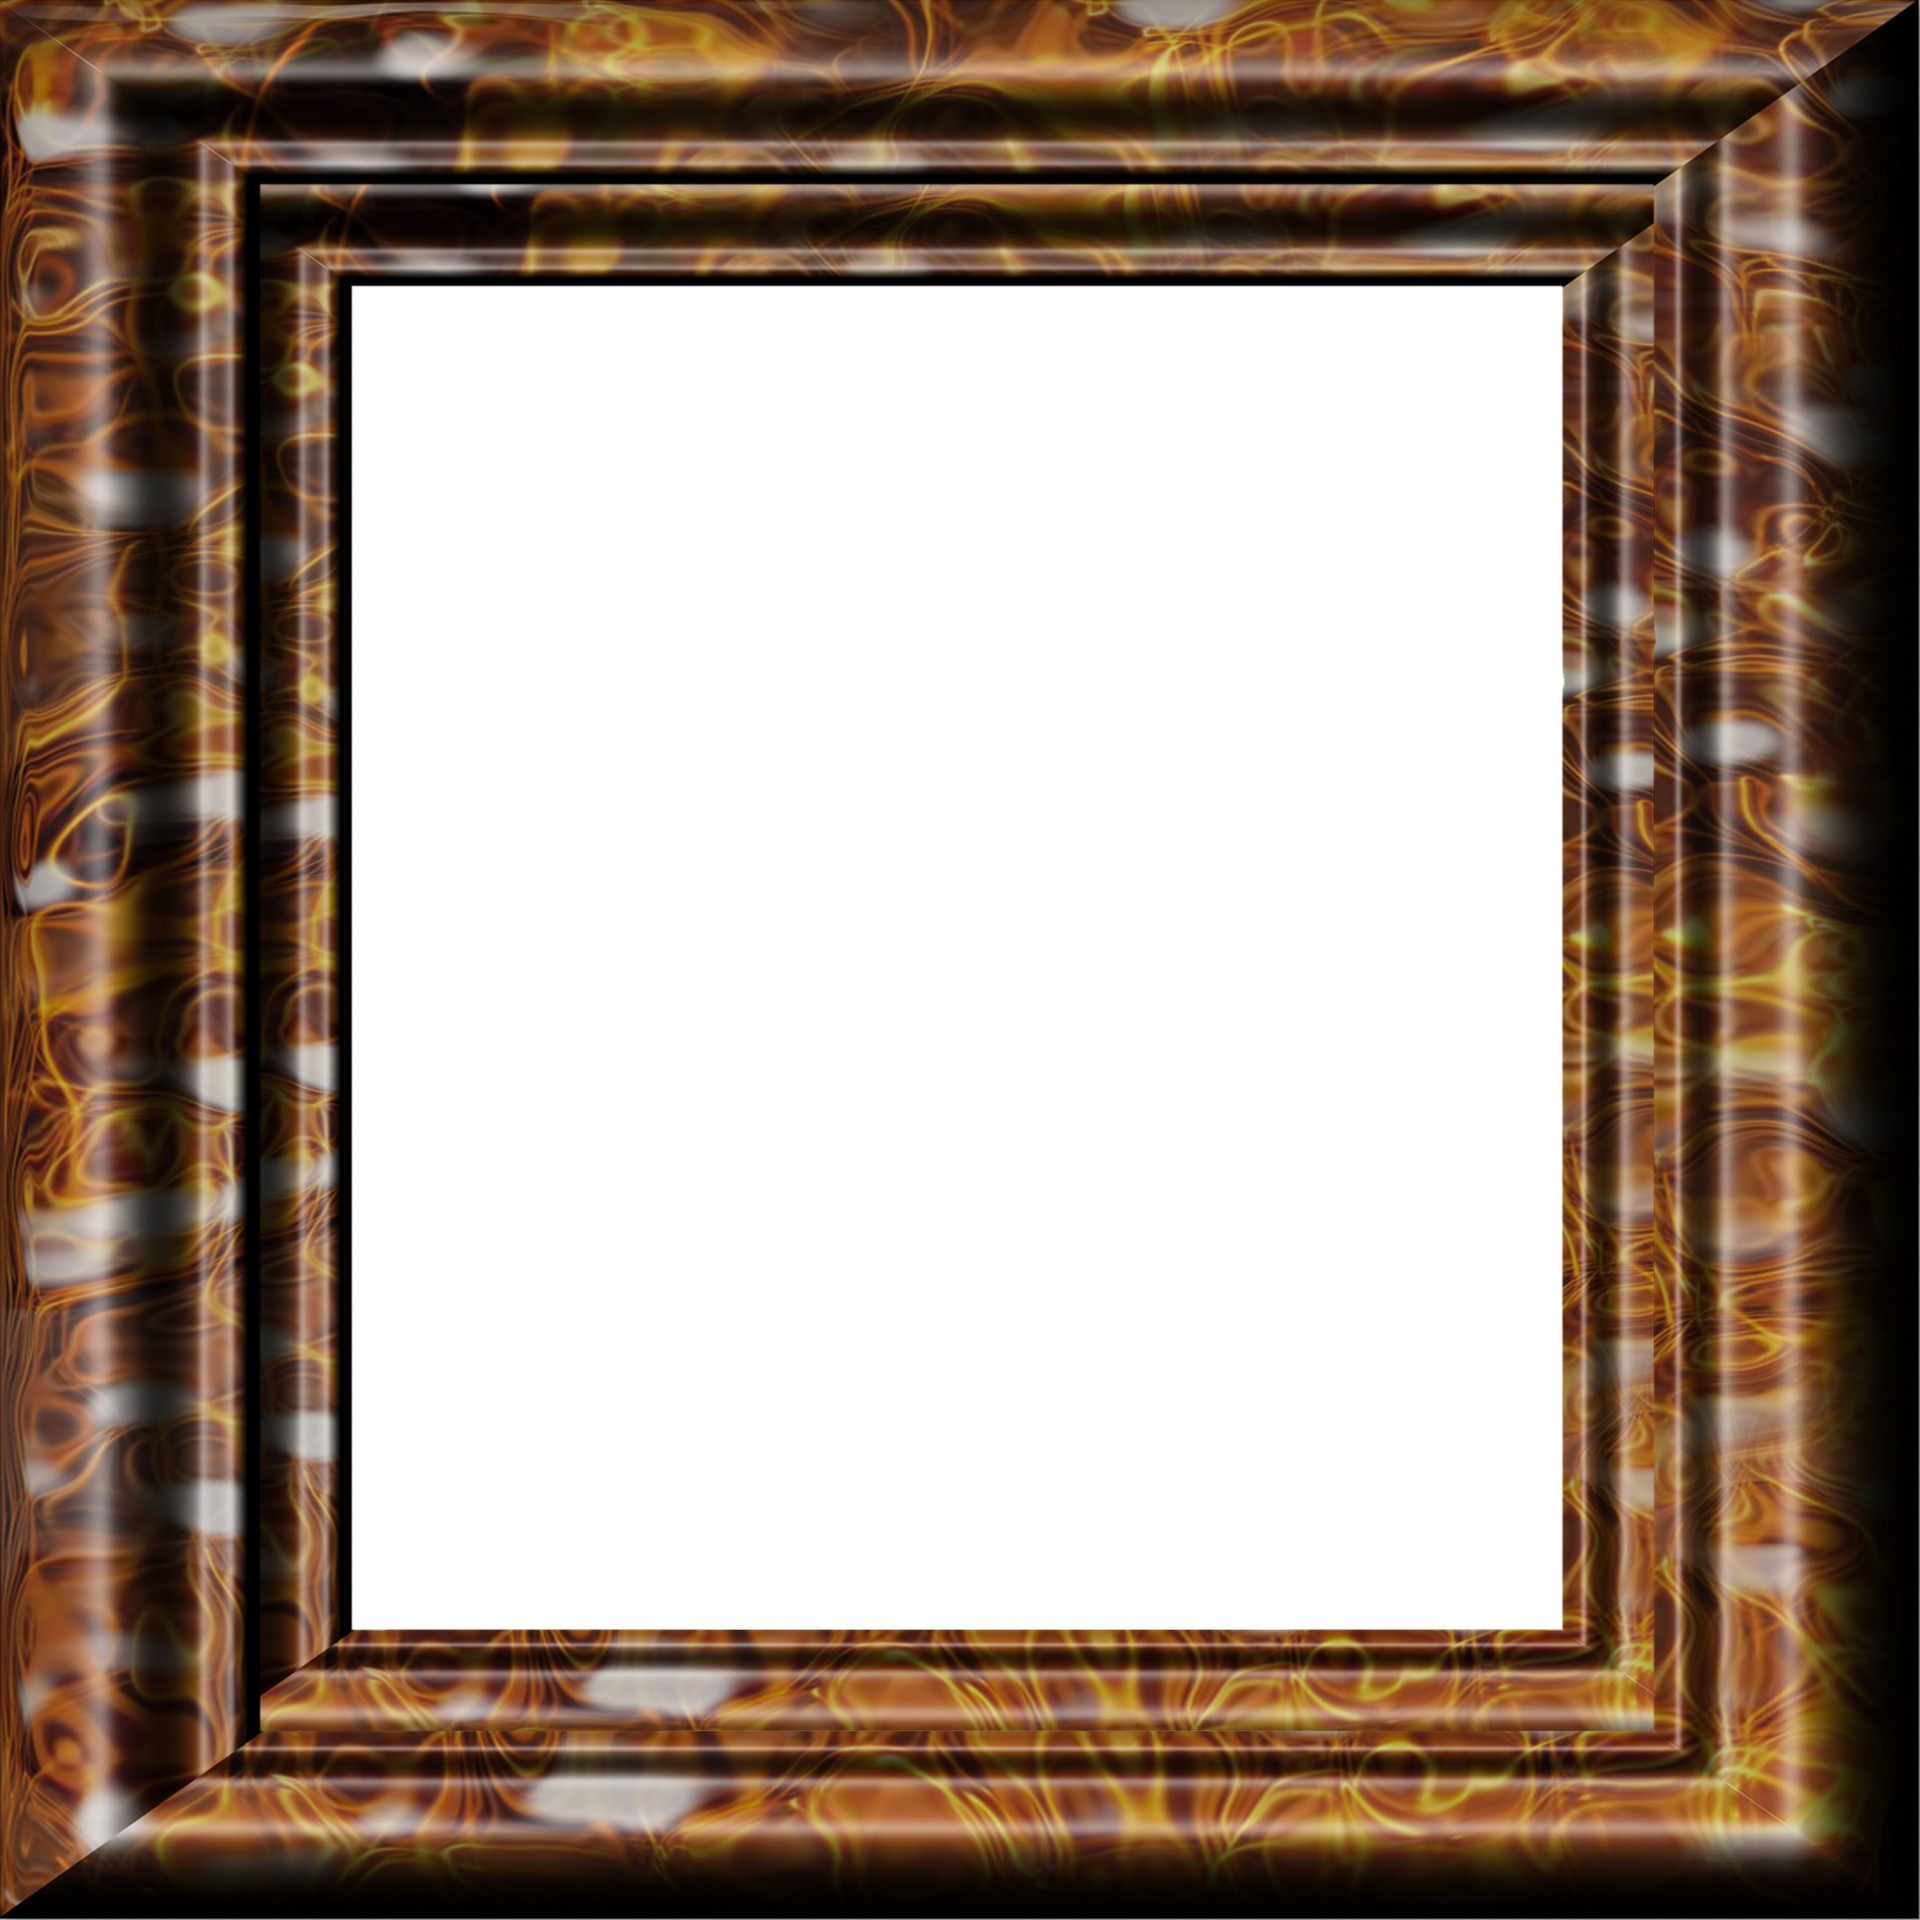 Cool Frame Free Stock Photo